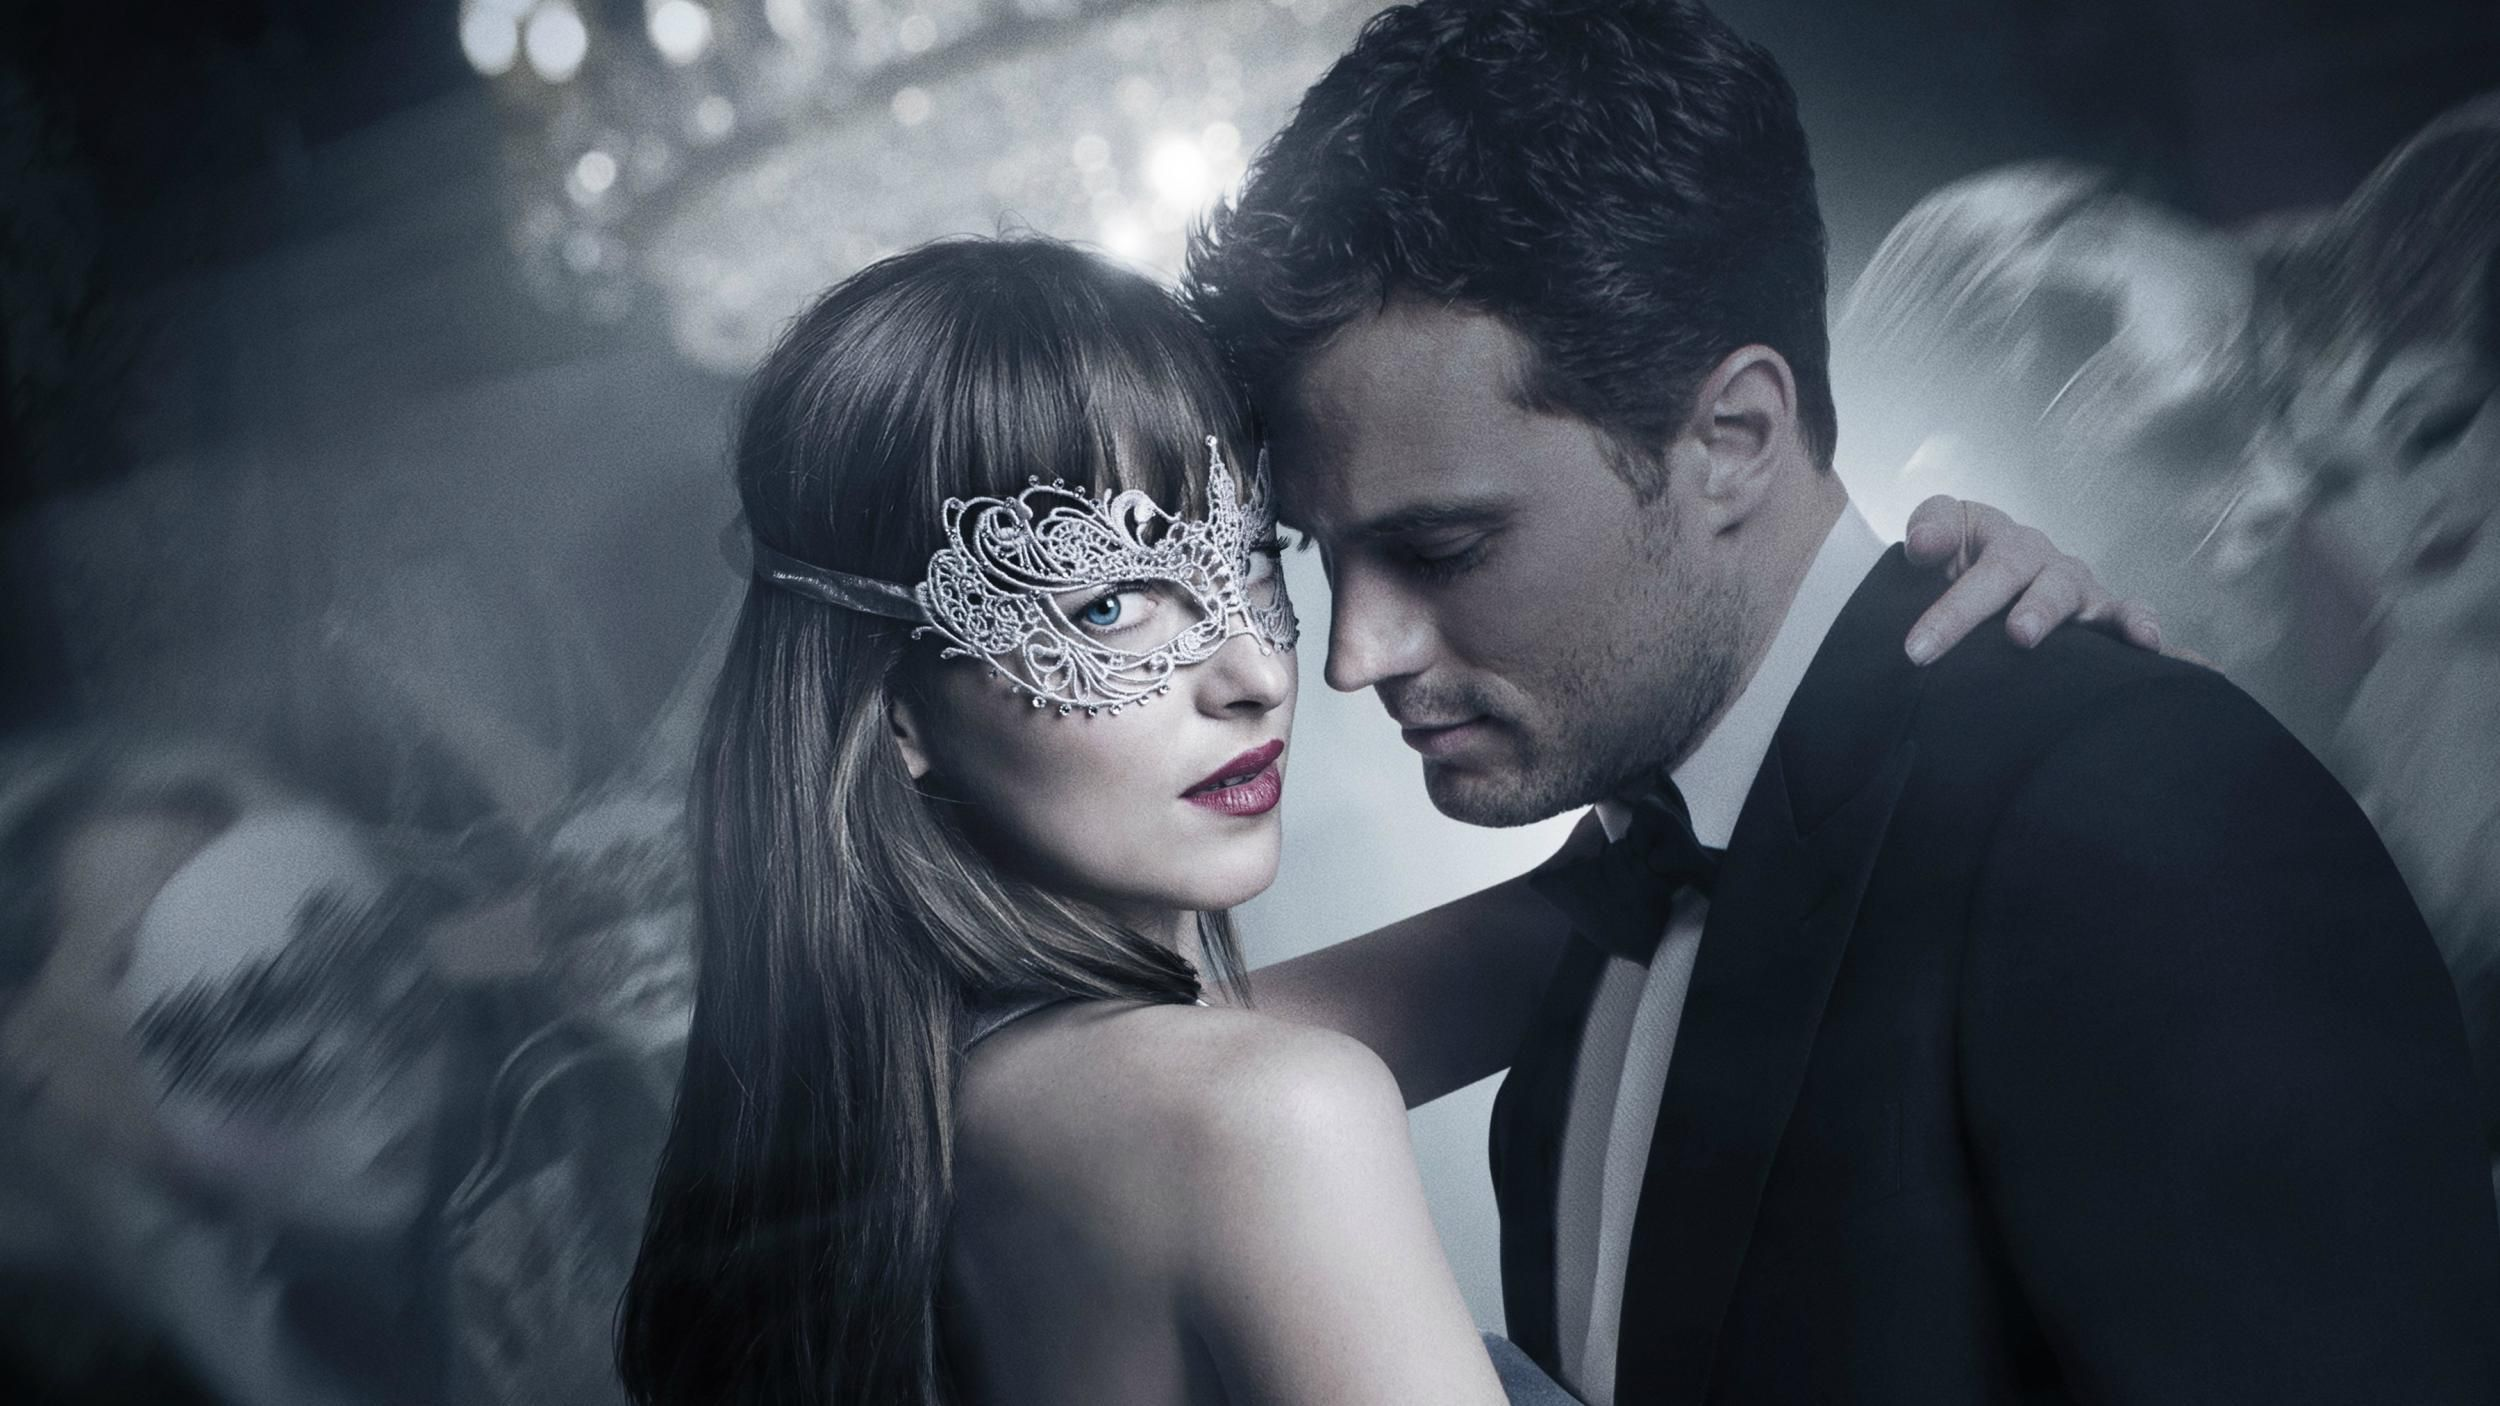 All The Most Memorable Fifty Shades Scenes